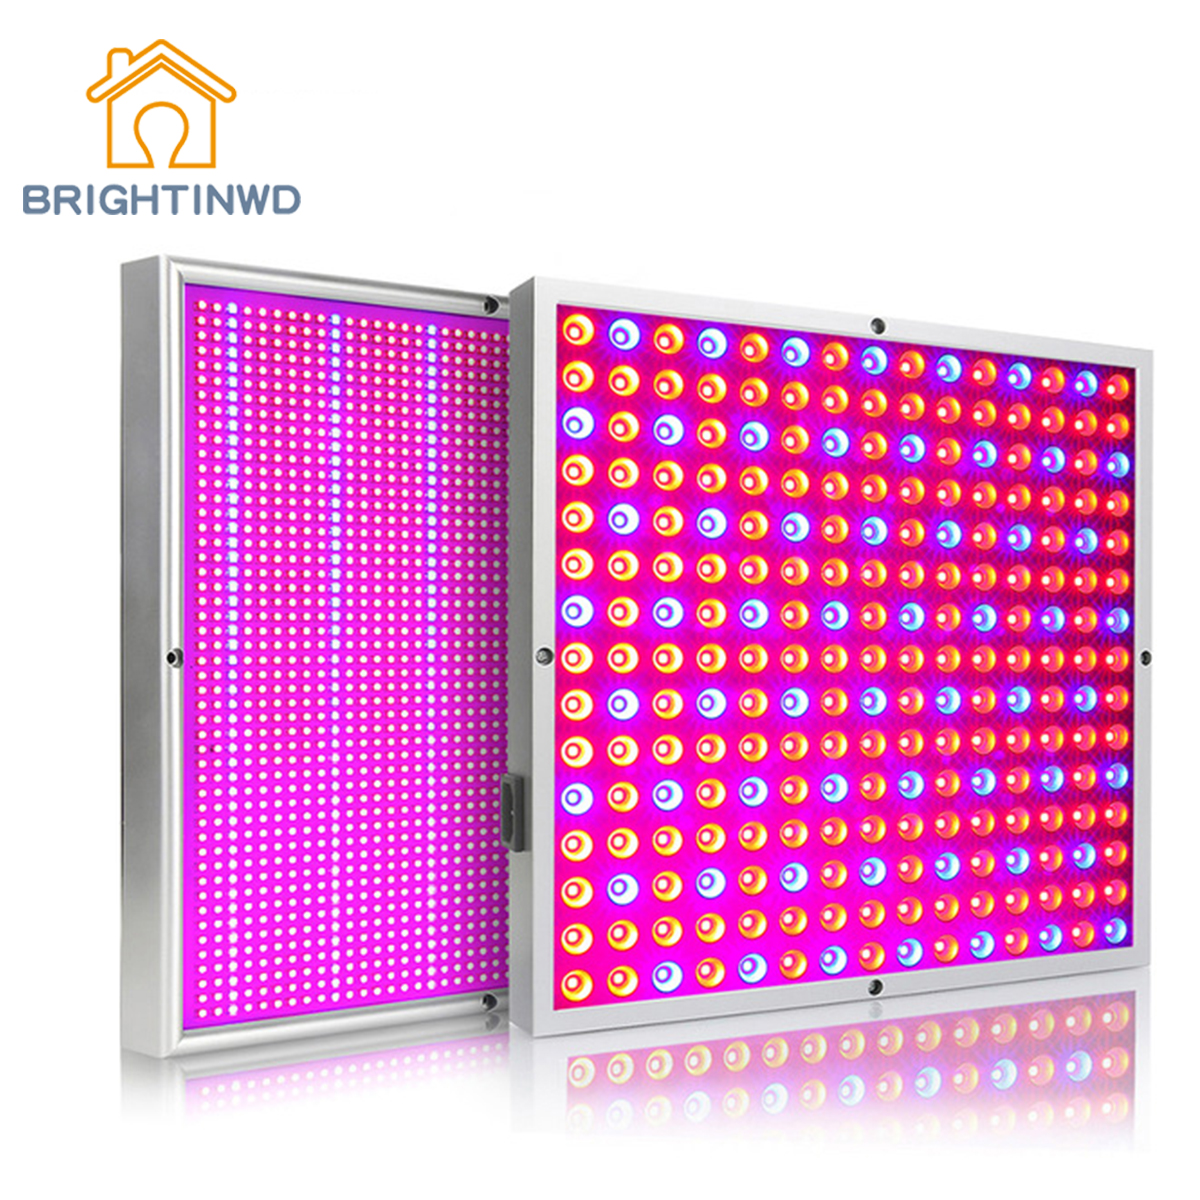 BRIGHTINWD Full Spectrum Plant Growth Lamp 45W/200W Fill Light ABS Indoor Growth Lamp Red And Blue Lamp Beads Square Growth Pane